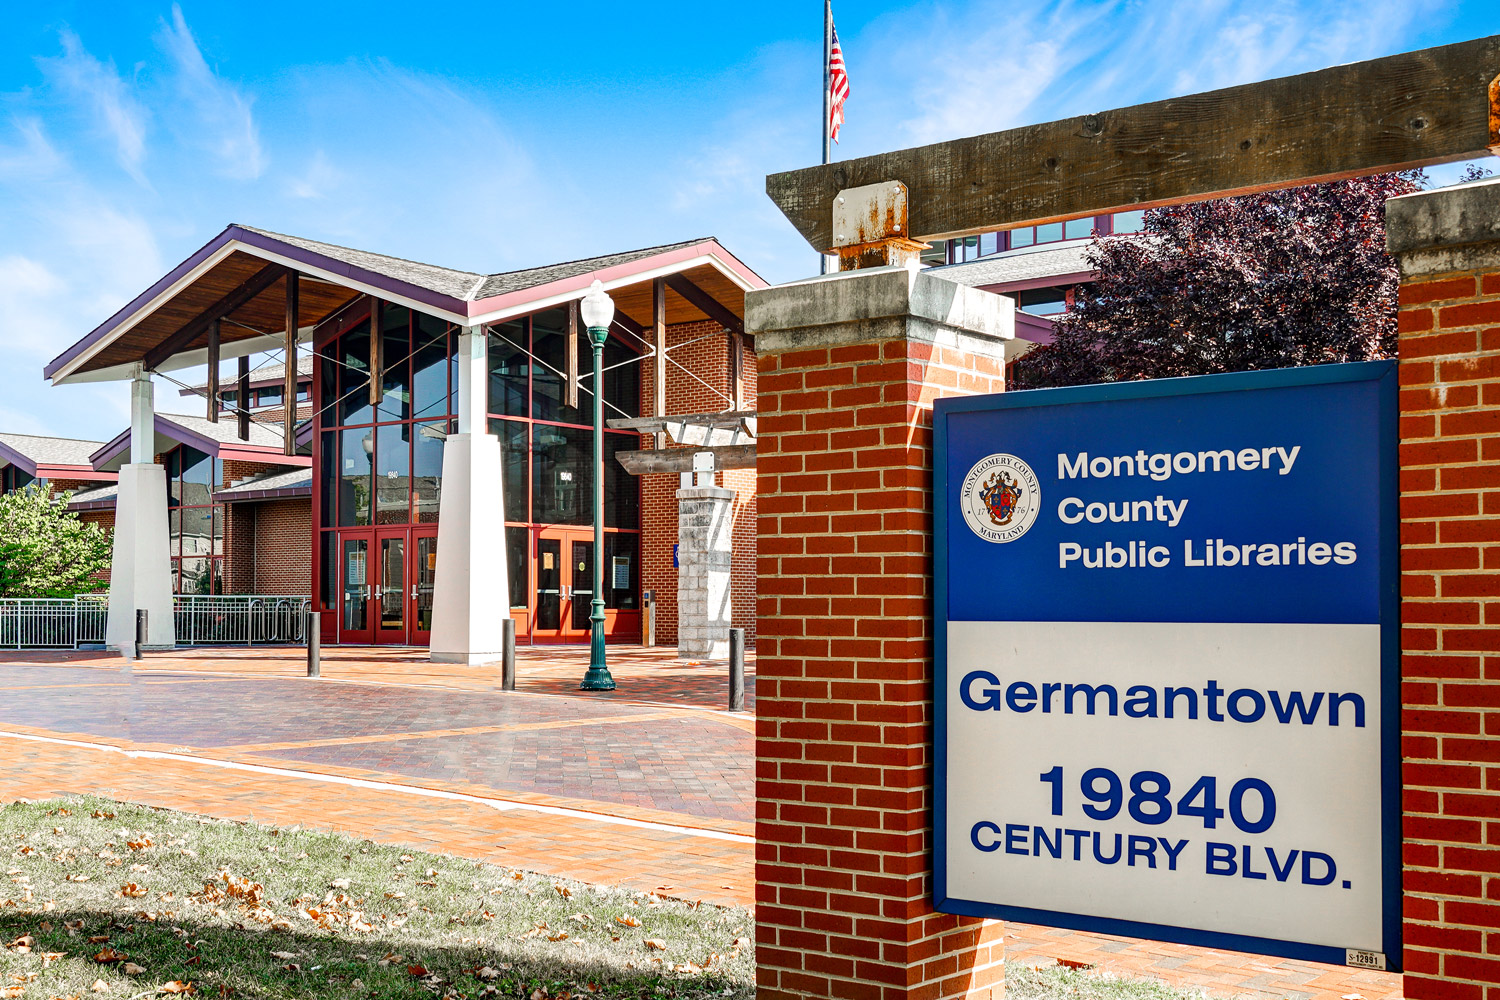 Germantown Public Library is 5 minutes from Seneca Club Apartments in Germantown, MD